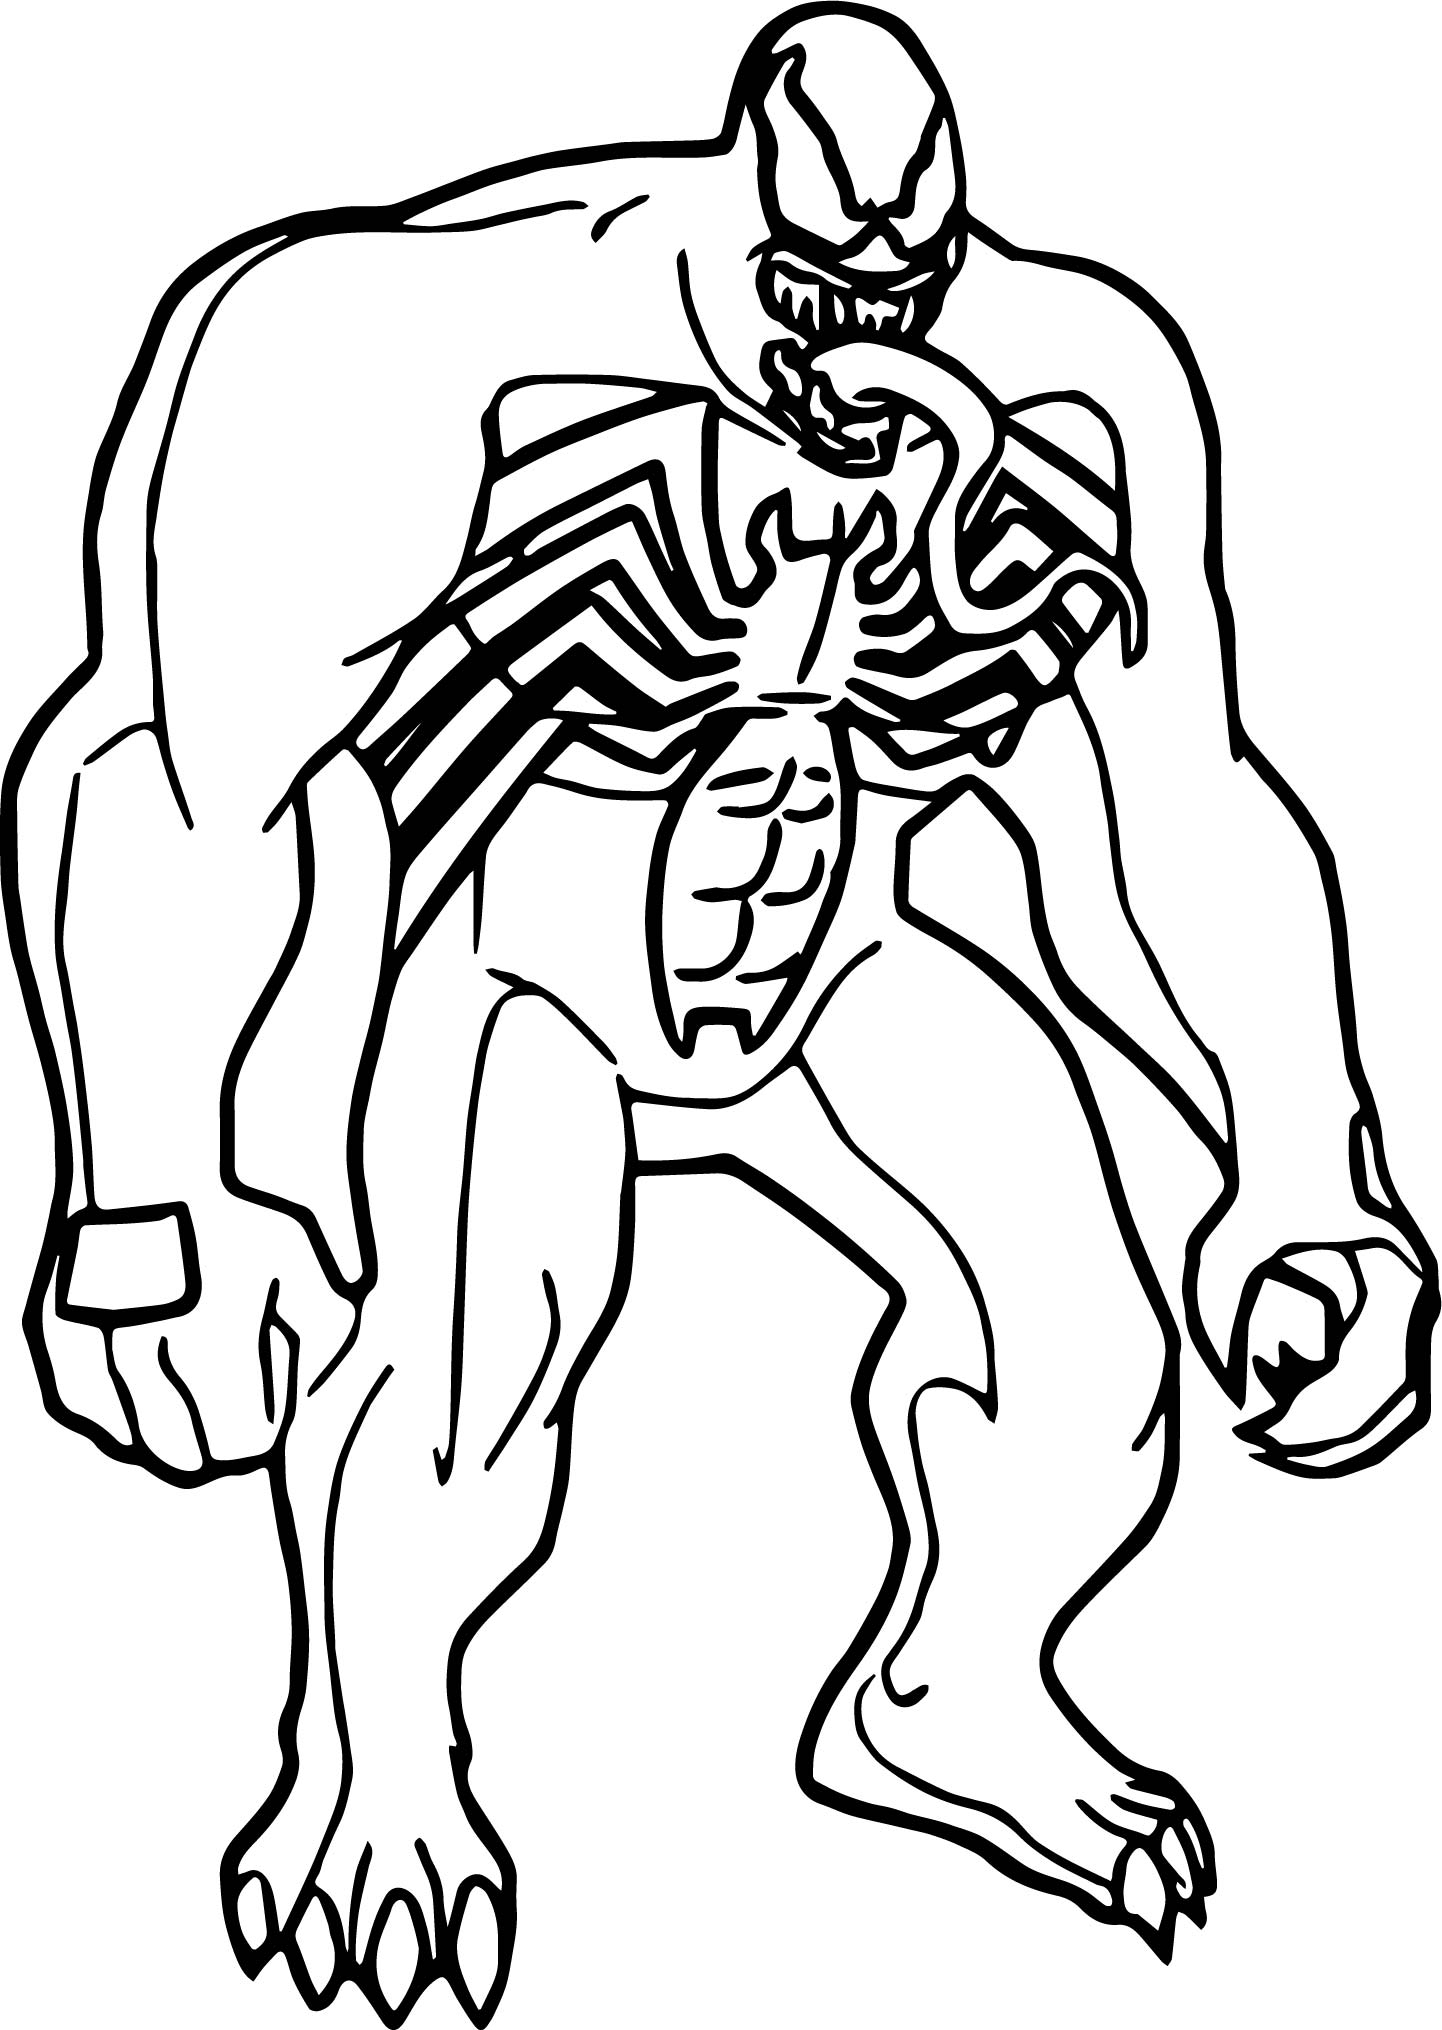 free adult coloring pages to print - venom coloring pages